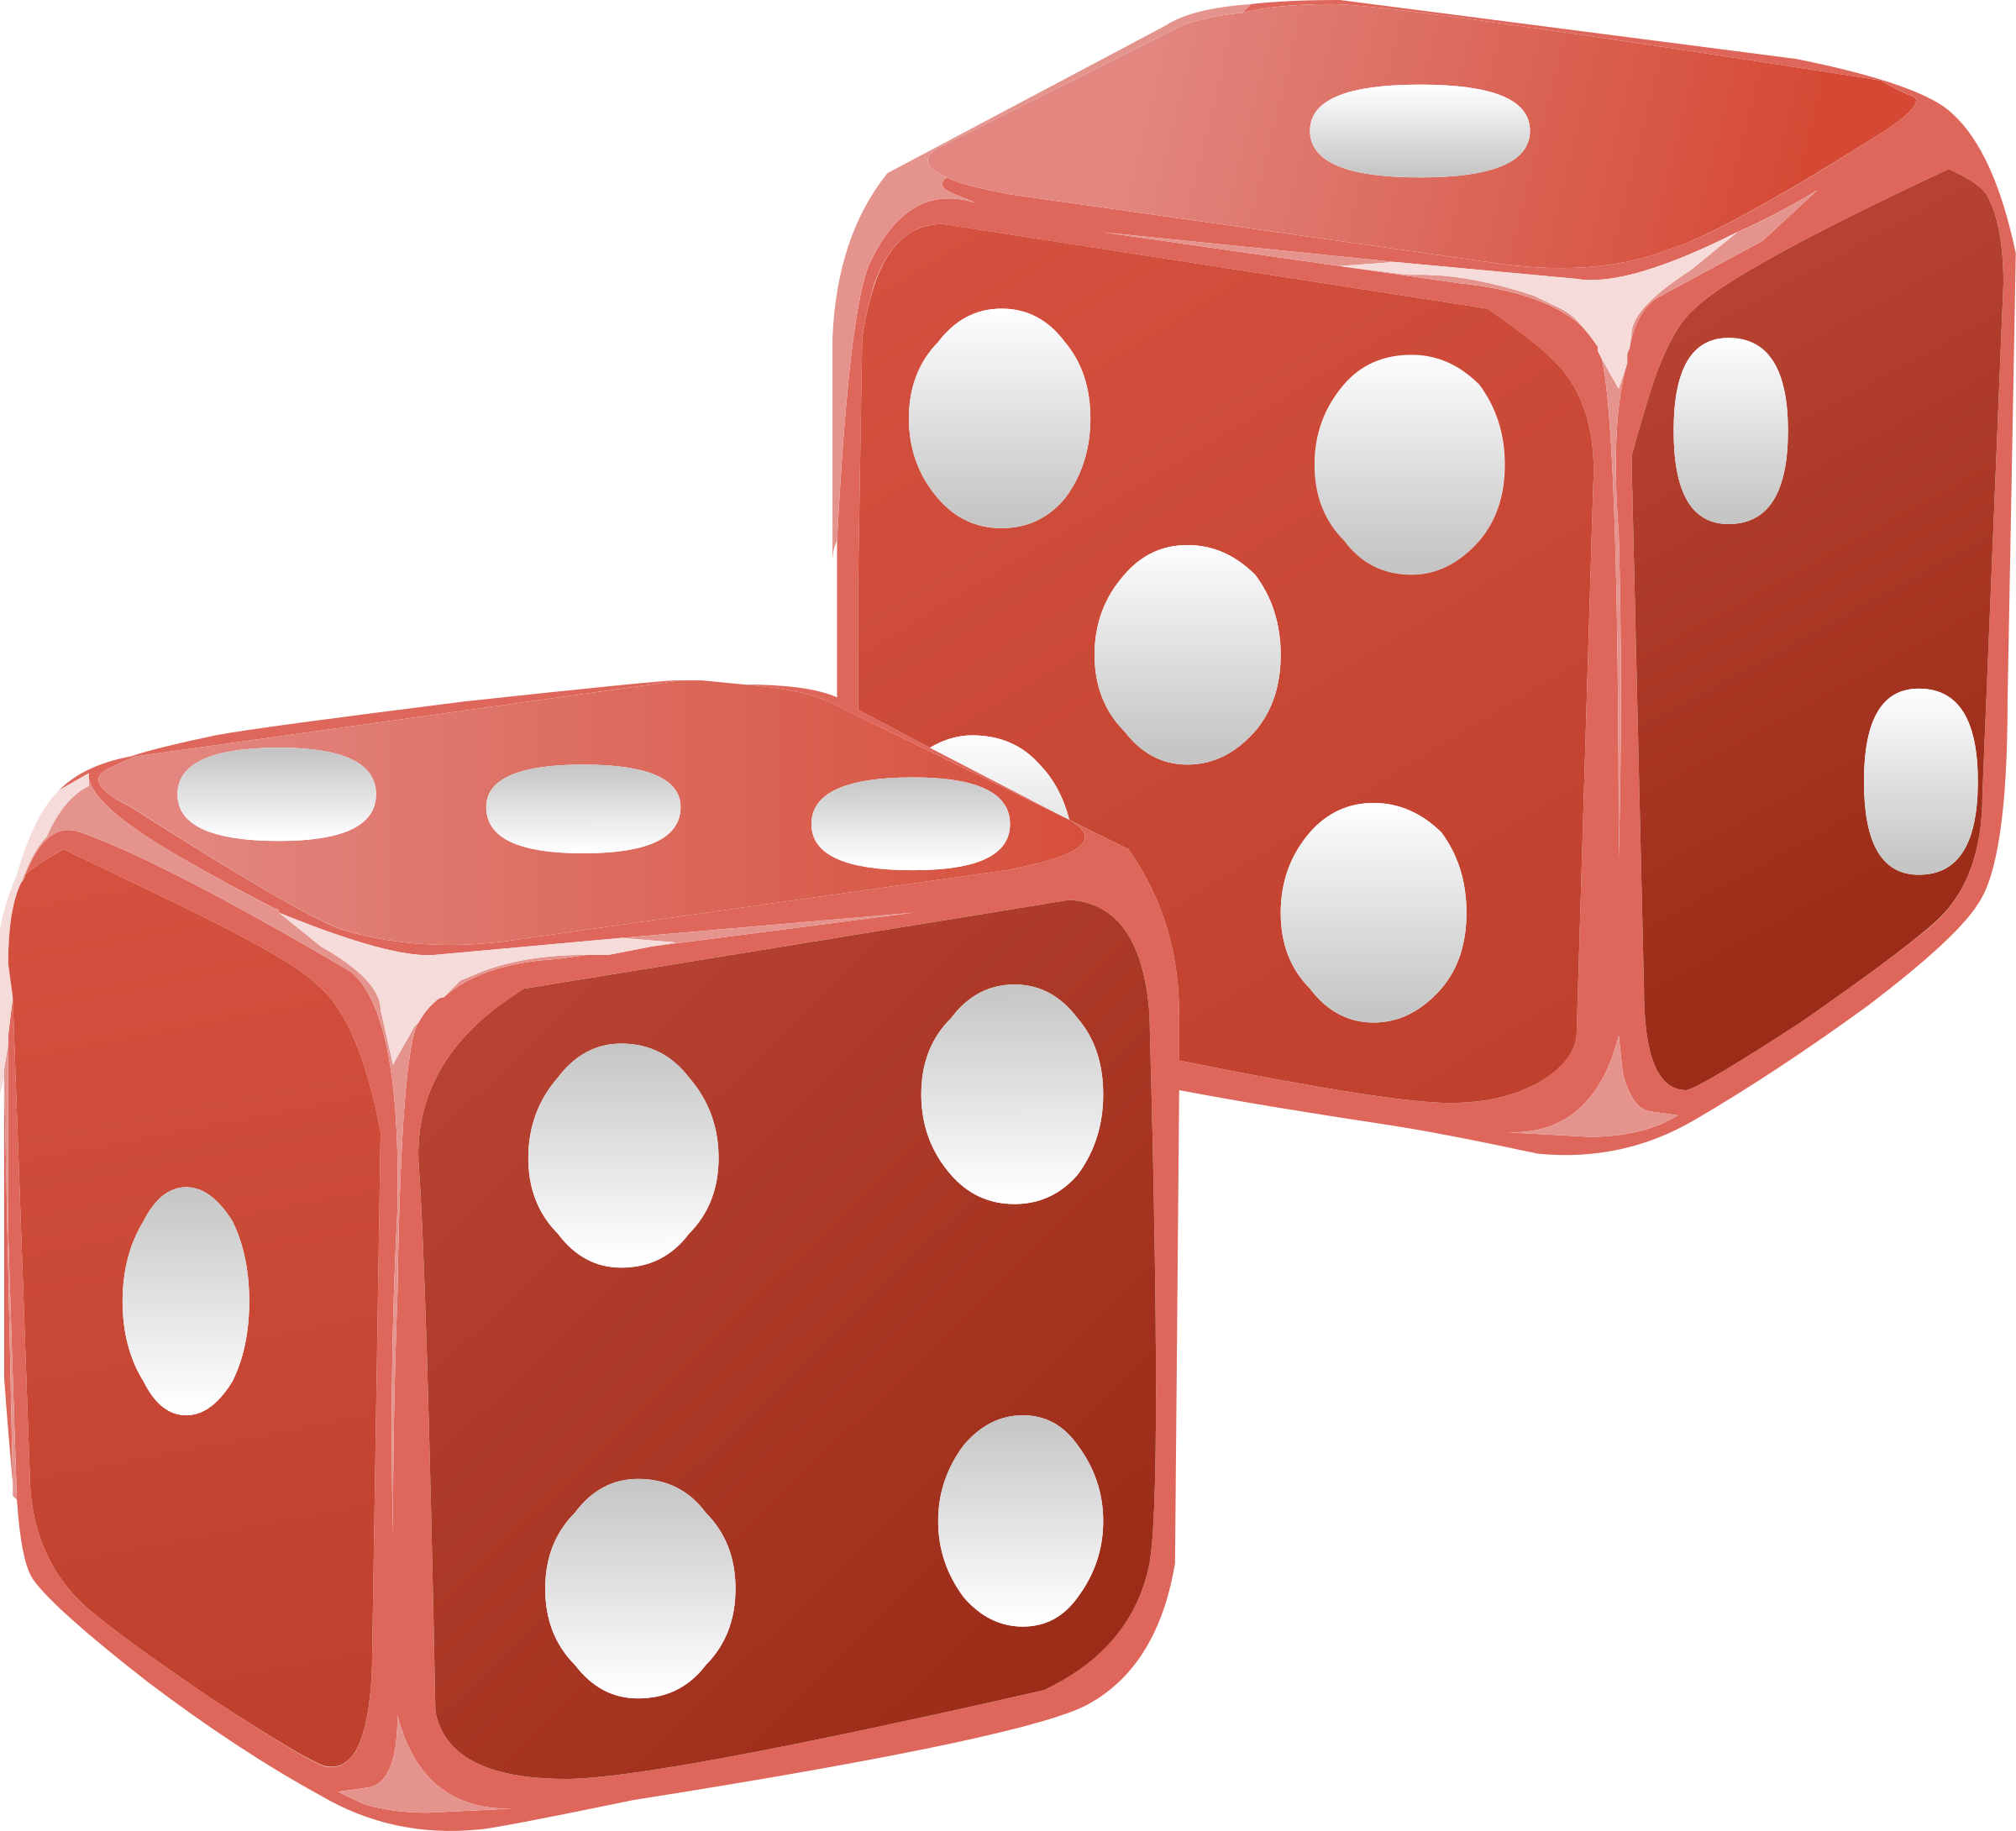 Dice clipart objects By Misc Dice 009 By